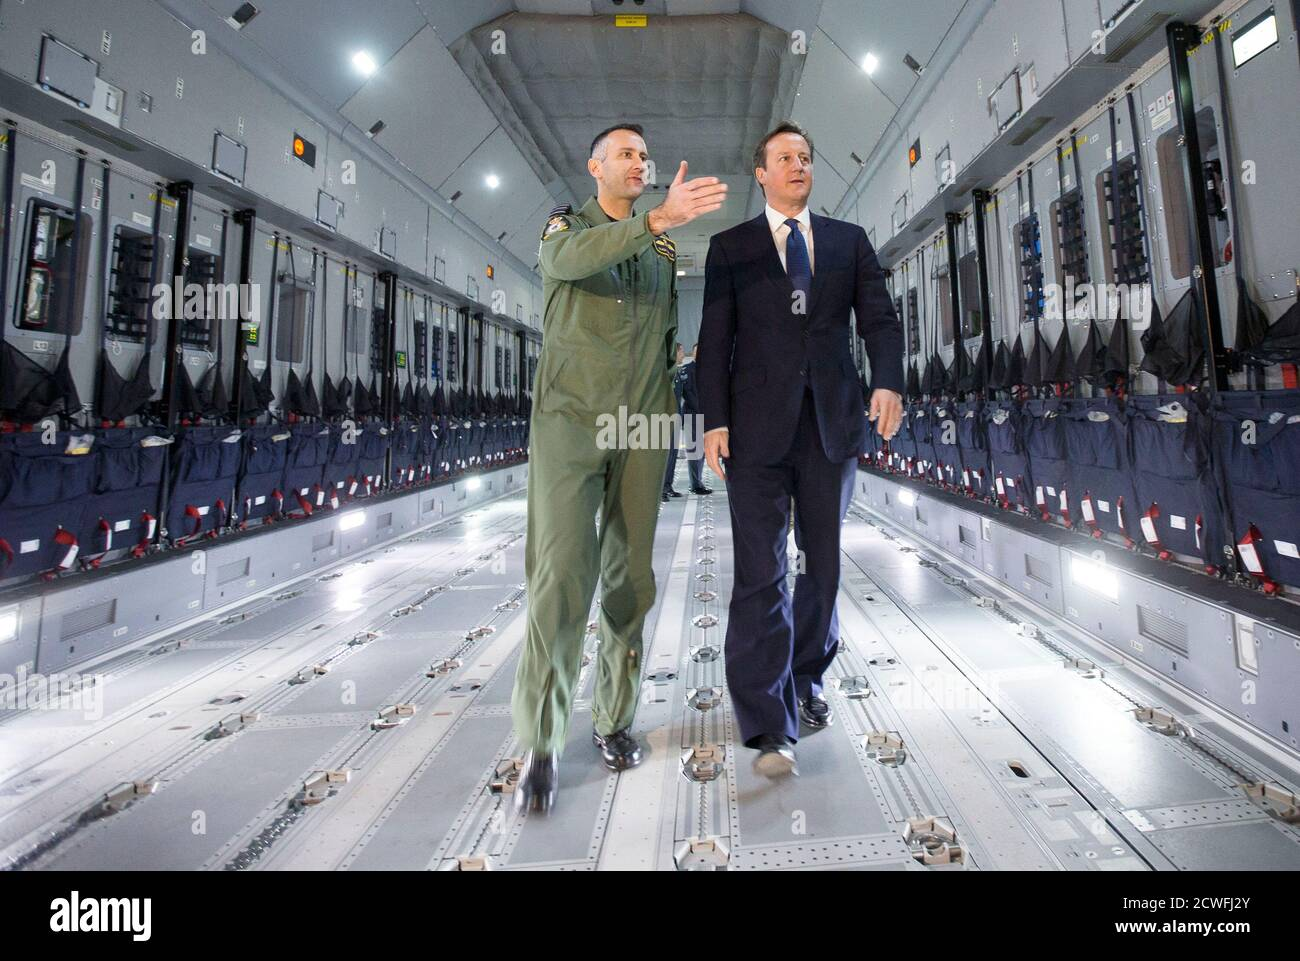 Britain's Prime Minister David Cameron views a newly delivered A400M Atlas aircraft with wing commander Simon Boyle at RAF Brize Norton, central England, November 27, 2014. The RAF will take delivery of 22 of the A400M aircraft. REUTERS/Peter Nicholls (BRITAIN - Tags: POLITICS MILITARY) Foto de stock